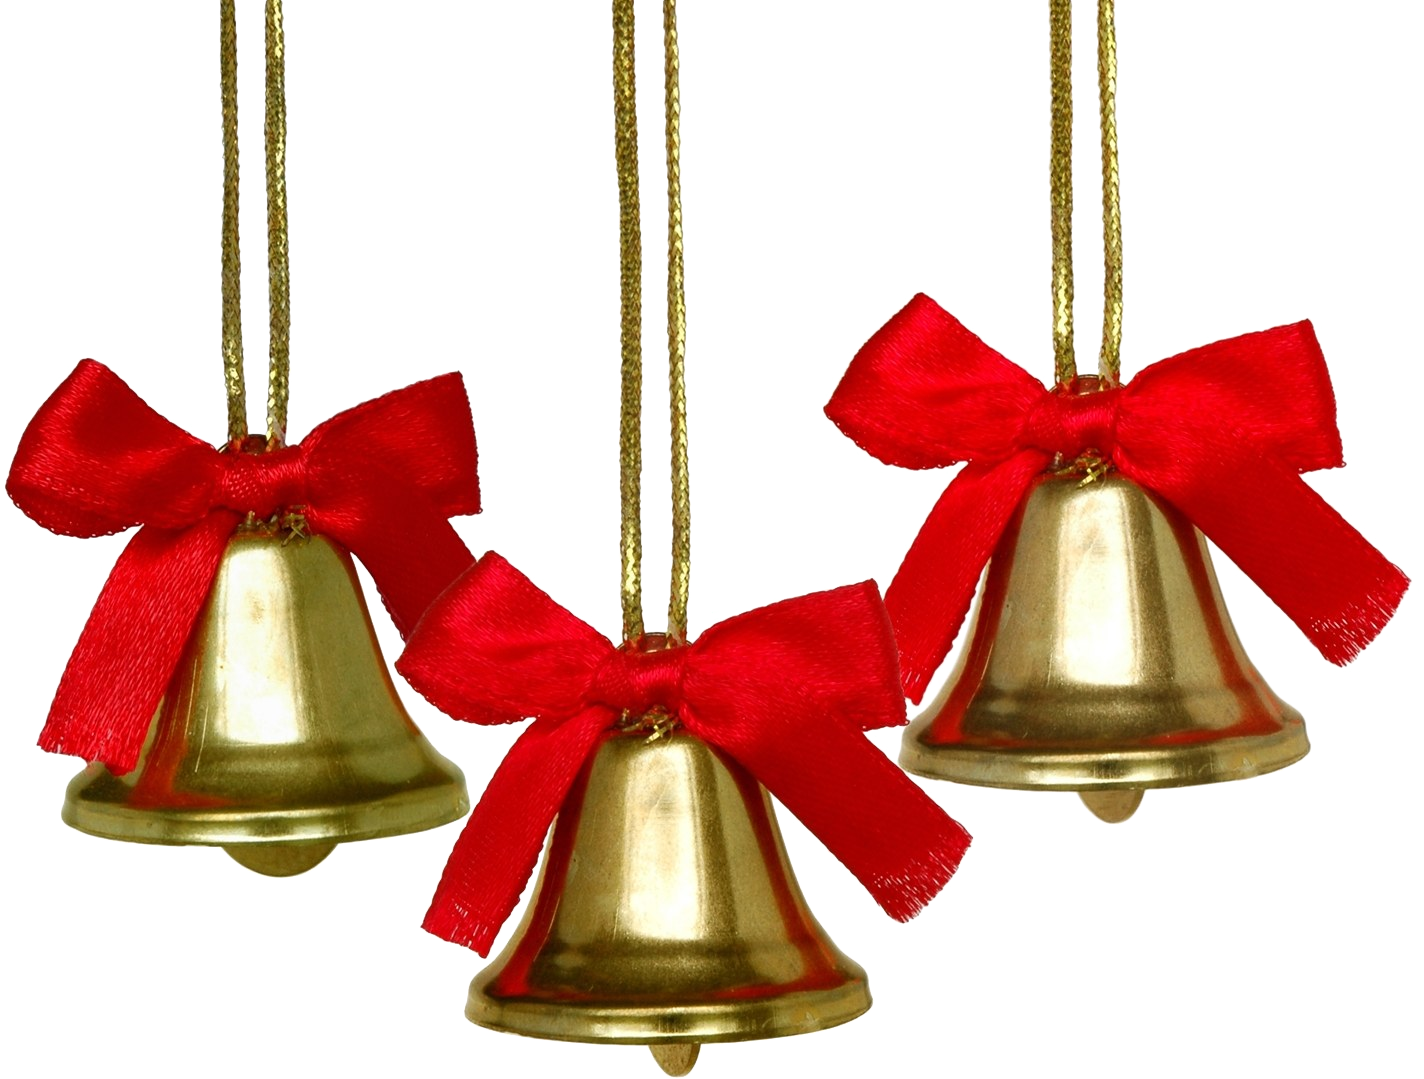 Xmas ornament bell png by iamszissz on DeviantArt